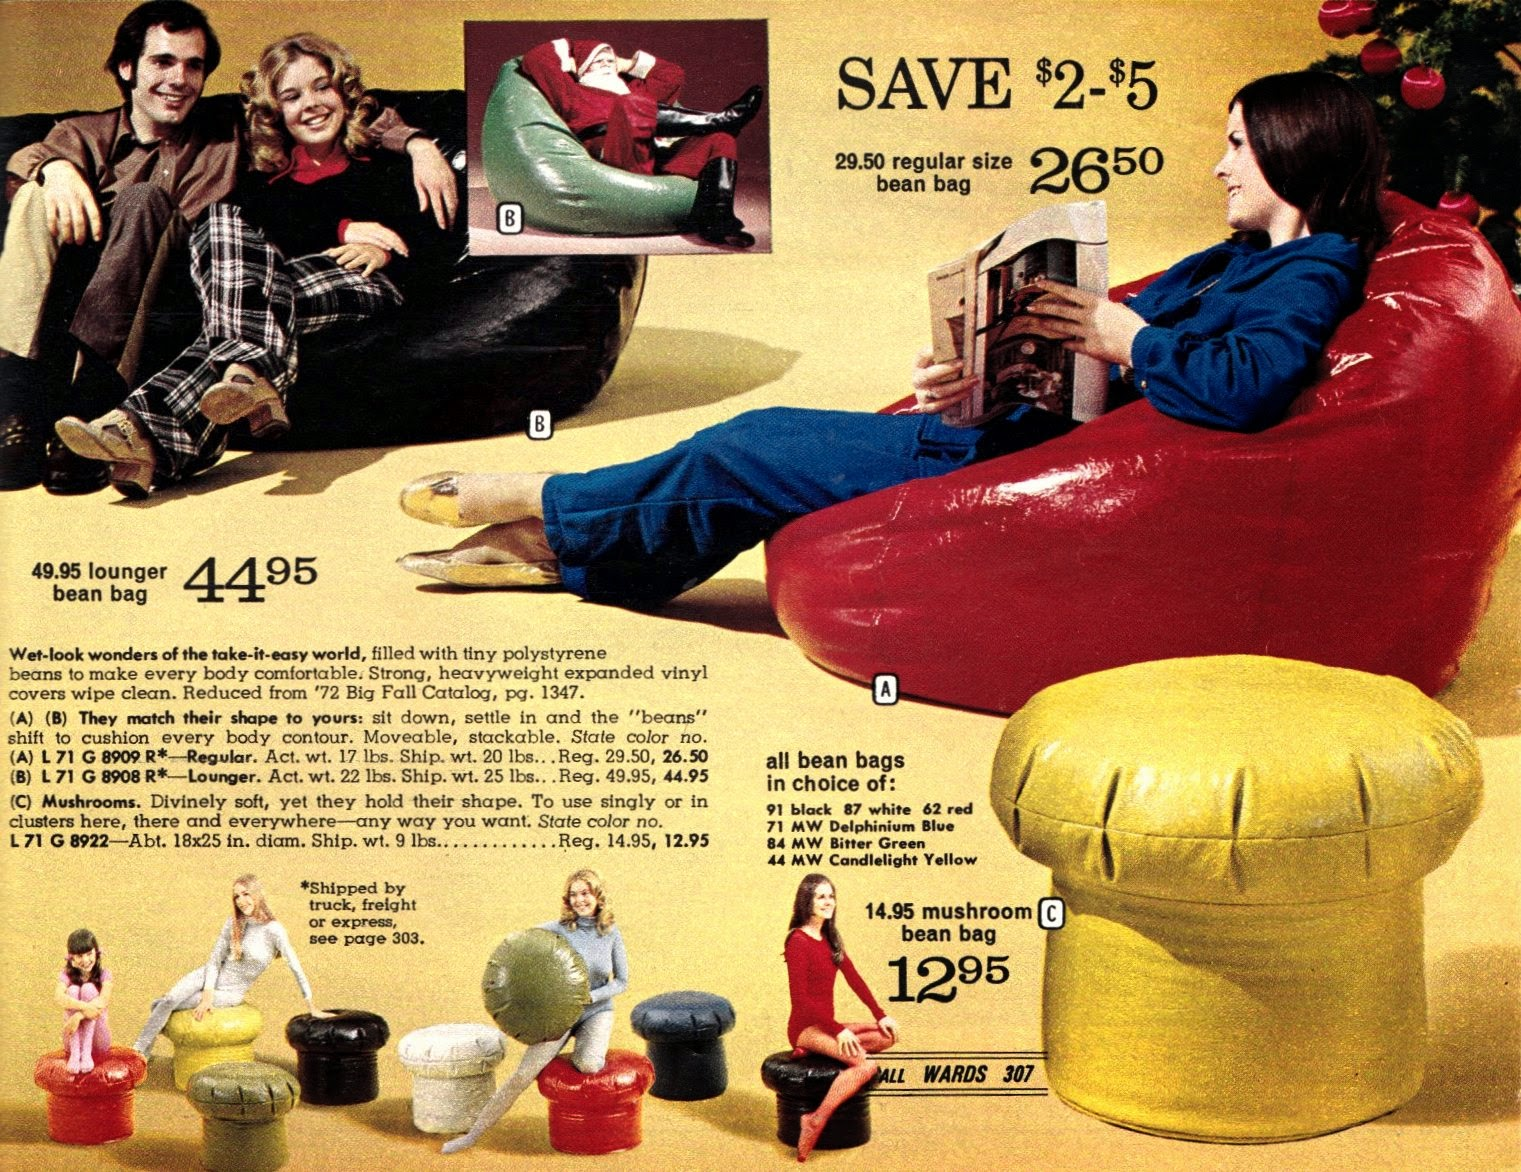 Mushroom Bean Bag Chair Kmart Kitchen Table And Chairs Everything Else Too Xmas In July Day 22 Lounger